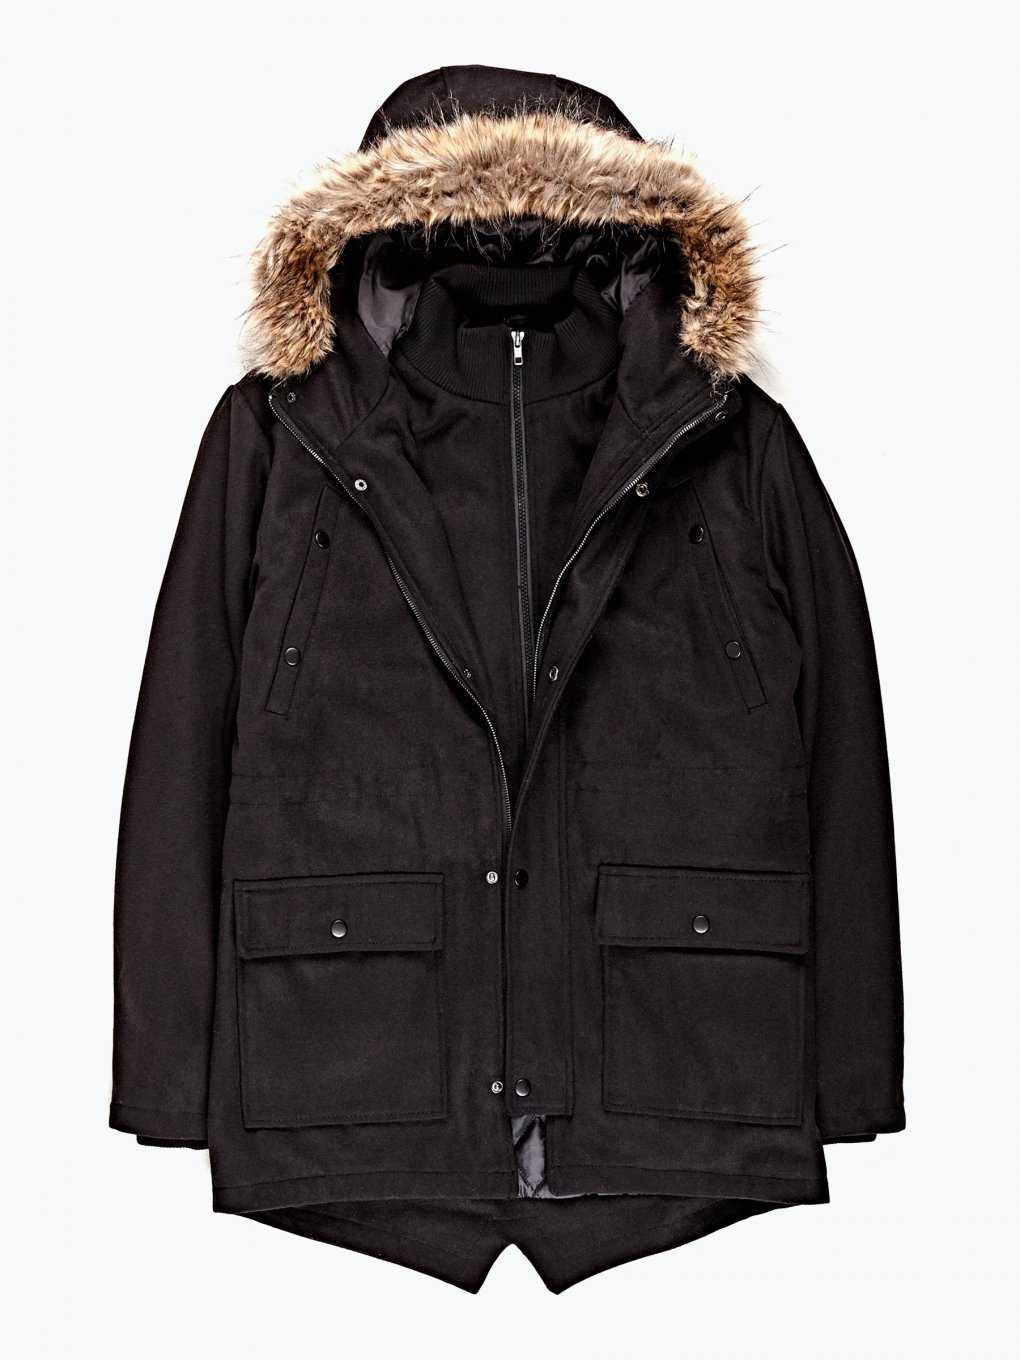 Parka coat with hood